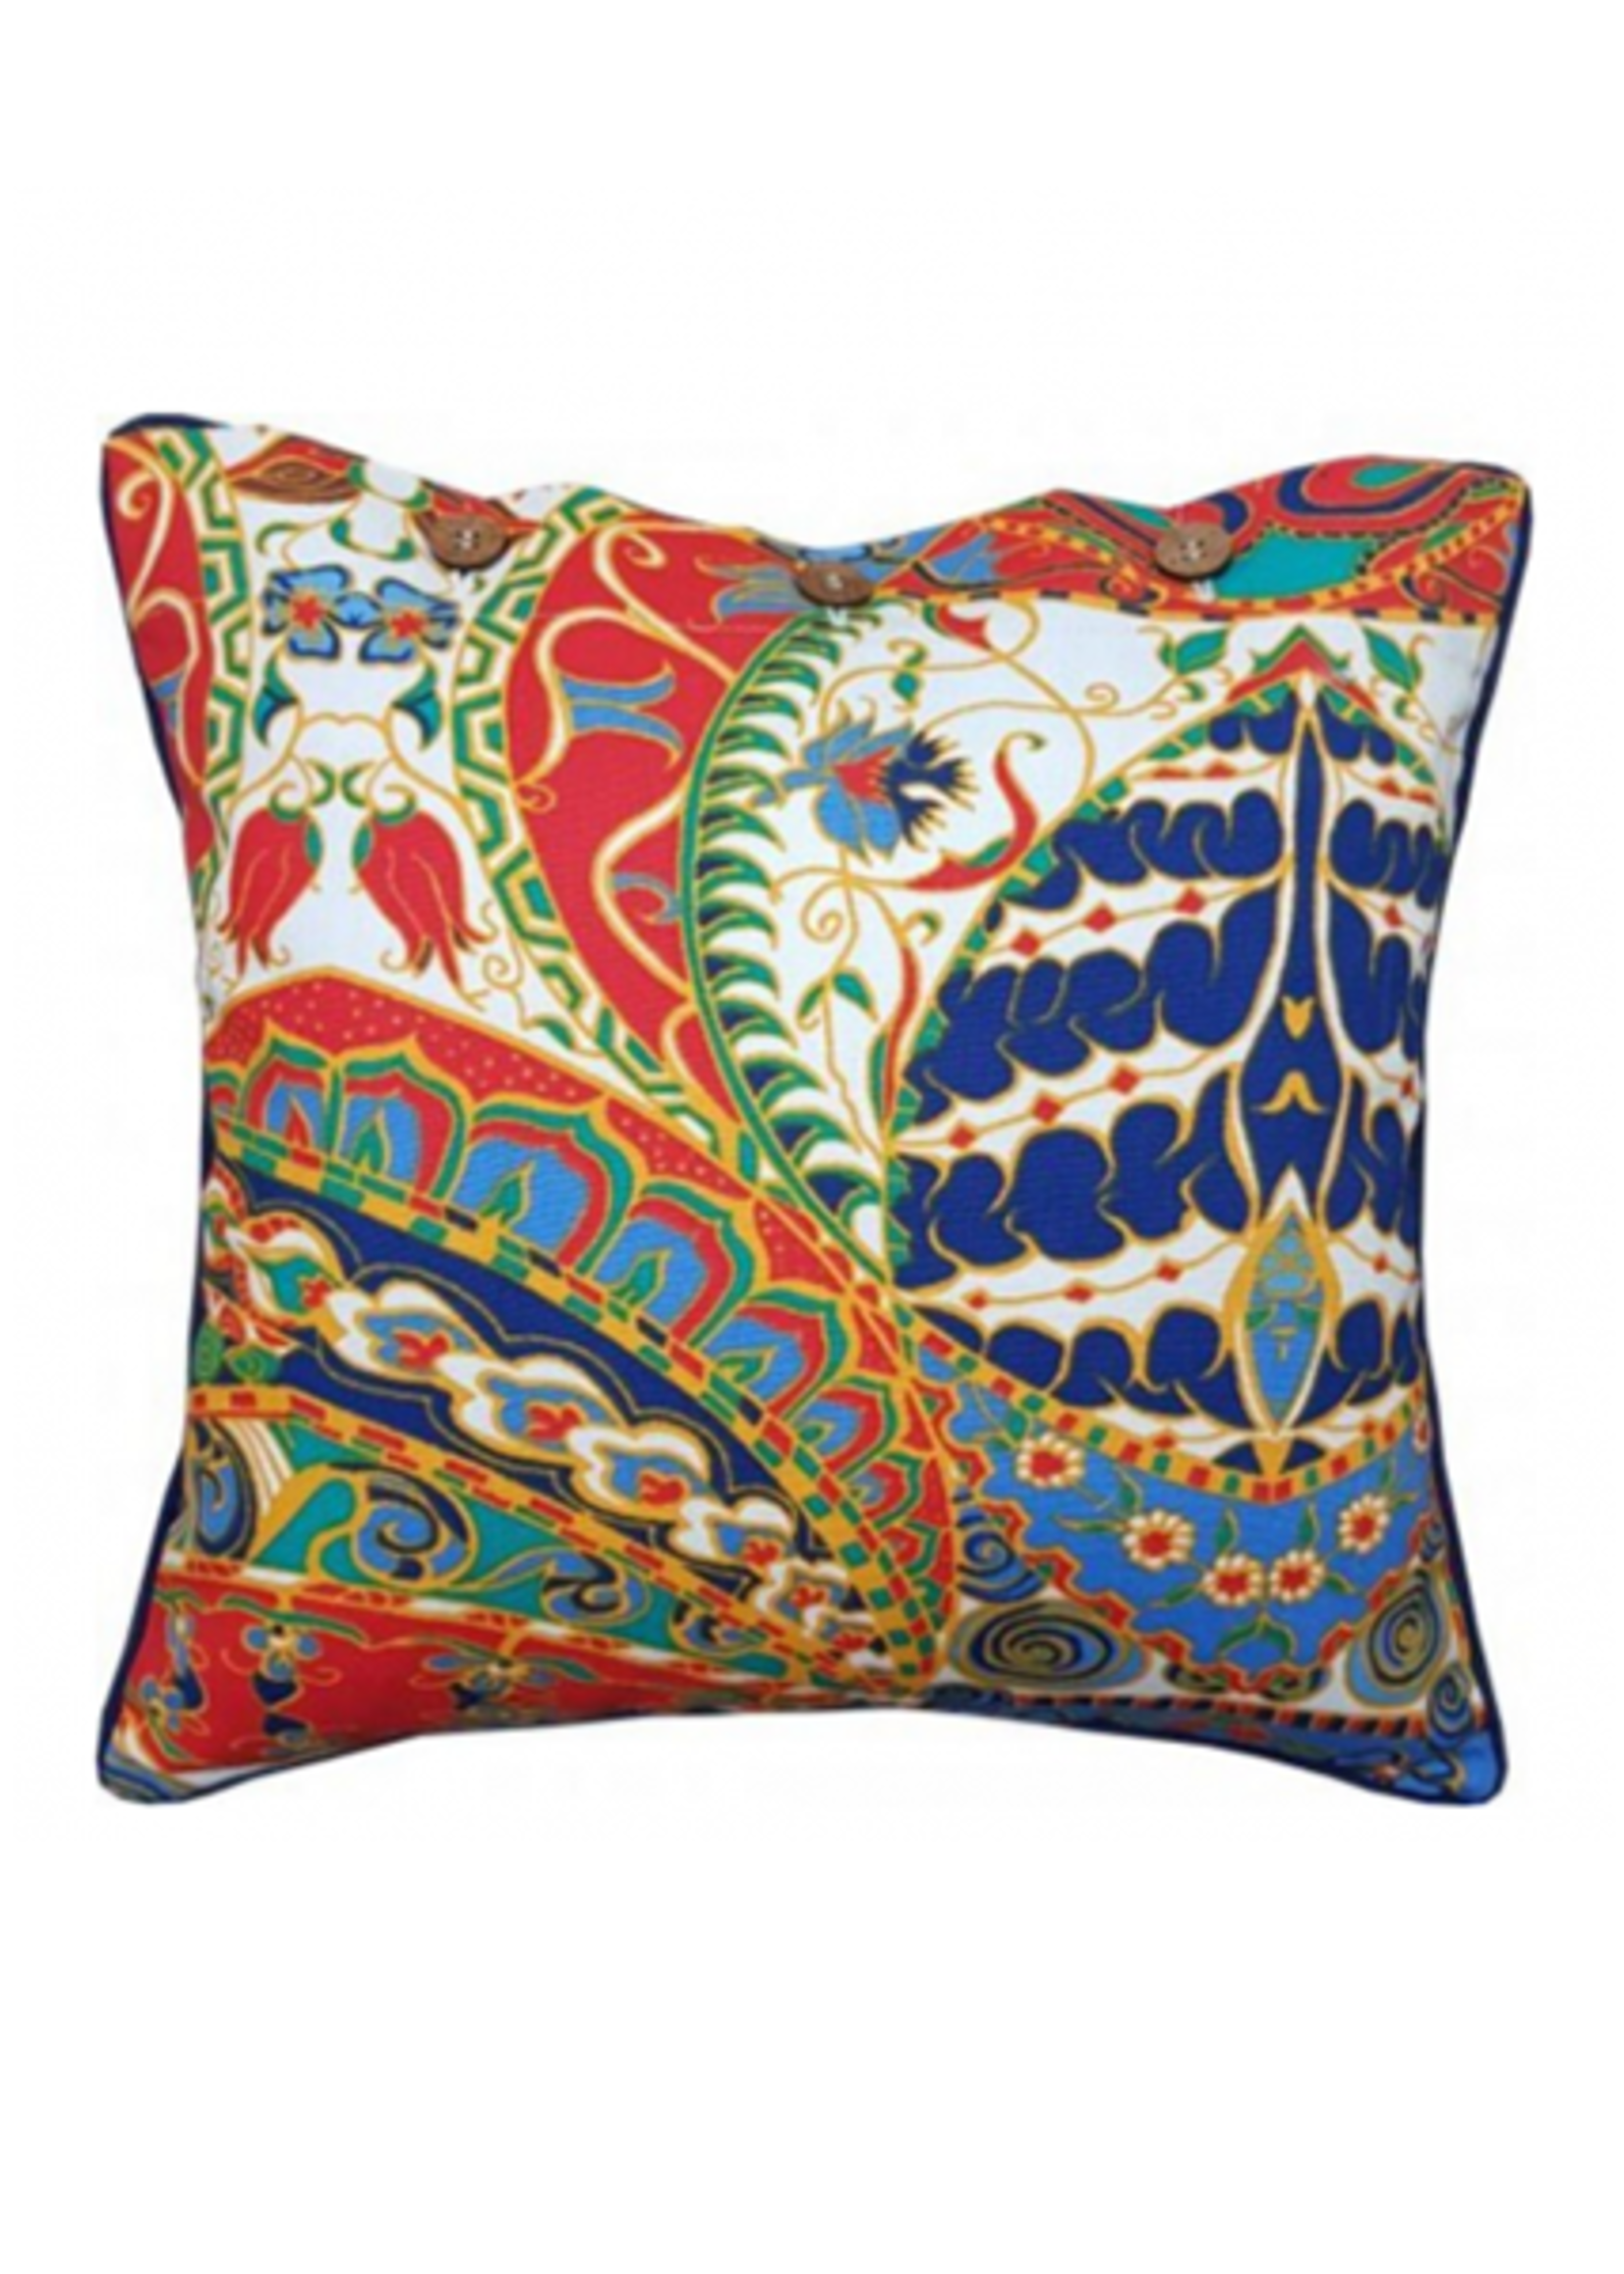 Craft Studio Ankara Cushion Cover 40x40cm